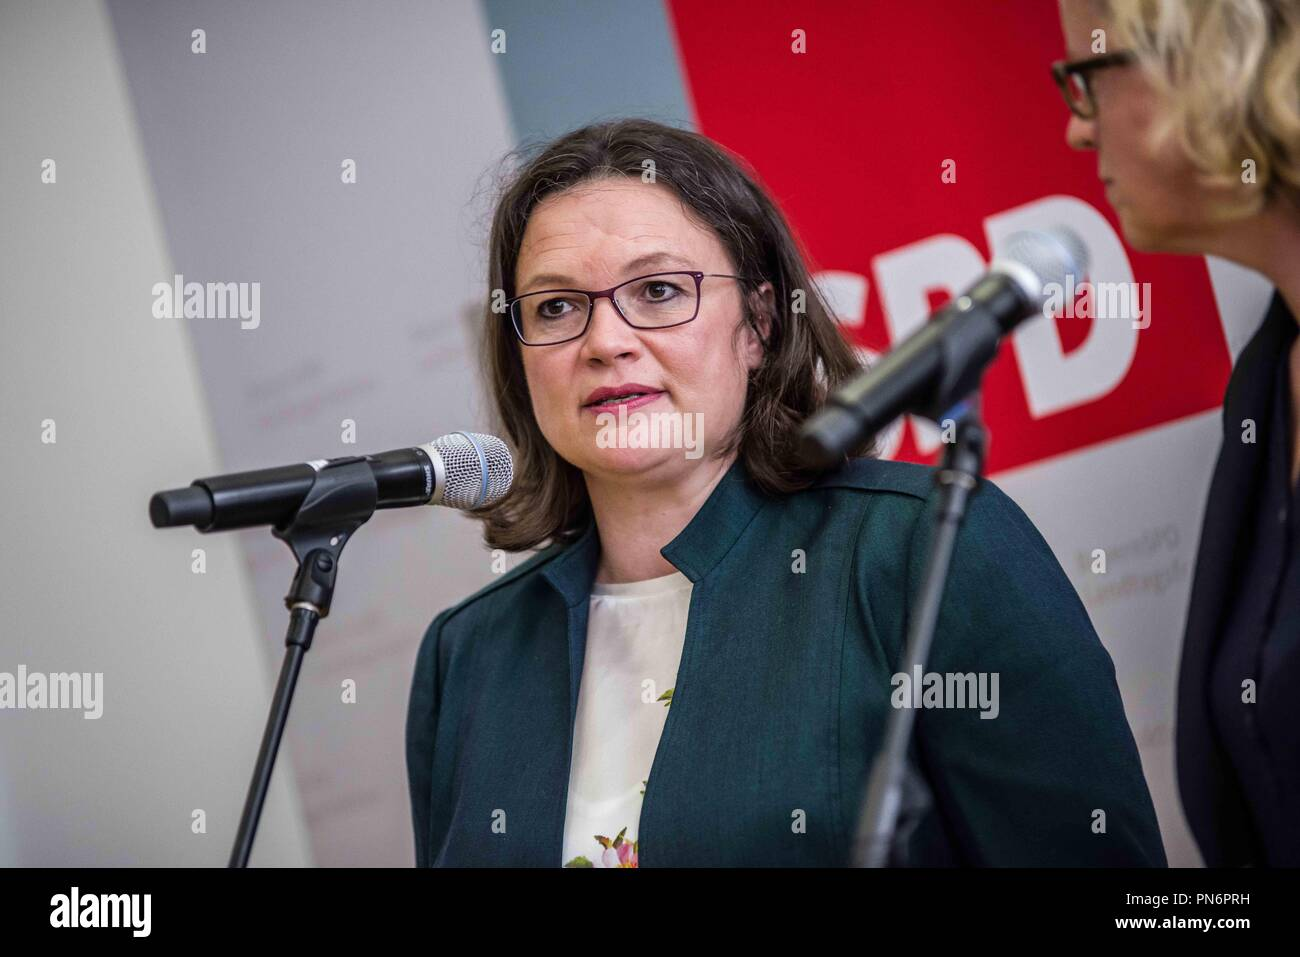 Munich, Bavaria, Germany. 20th Sep, 2018. ANDREA NAHLES and NATASCHA KOHNEN, the heads of the German and Bavarian fractions of the SPD party respectively, met at the Bavarian Landtag (Parliament) Thursday morning to discuss numerous issues, including the recent promotion of the embattled and allegedly compromised Hans George Maassen (Maaßen) of the Verfassungsschutz to Staatssekretaer. Despite the alleged giving out of unpublished information to the right-extreme AfD party, consulting with them, and resisting numerous calls to put the party under secret service monitoring, he was prote - Stock Image